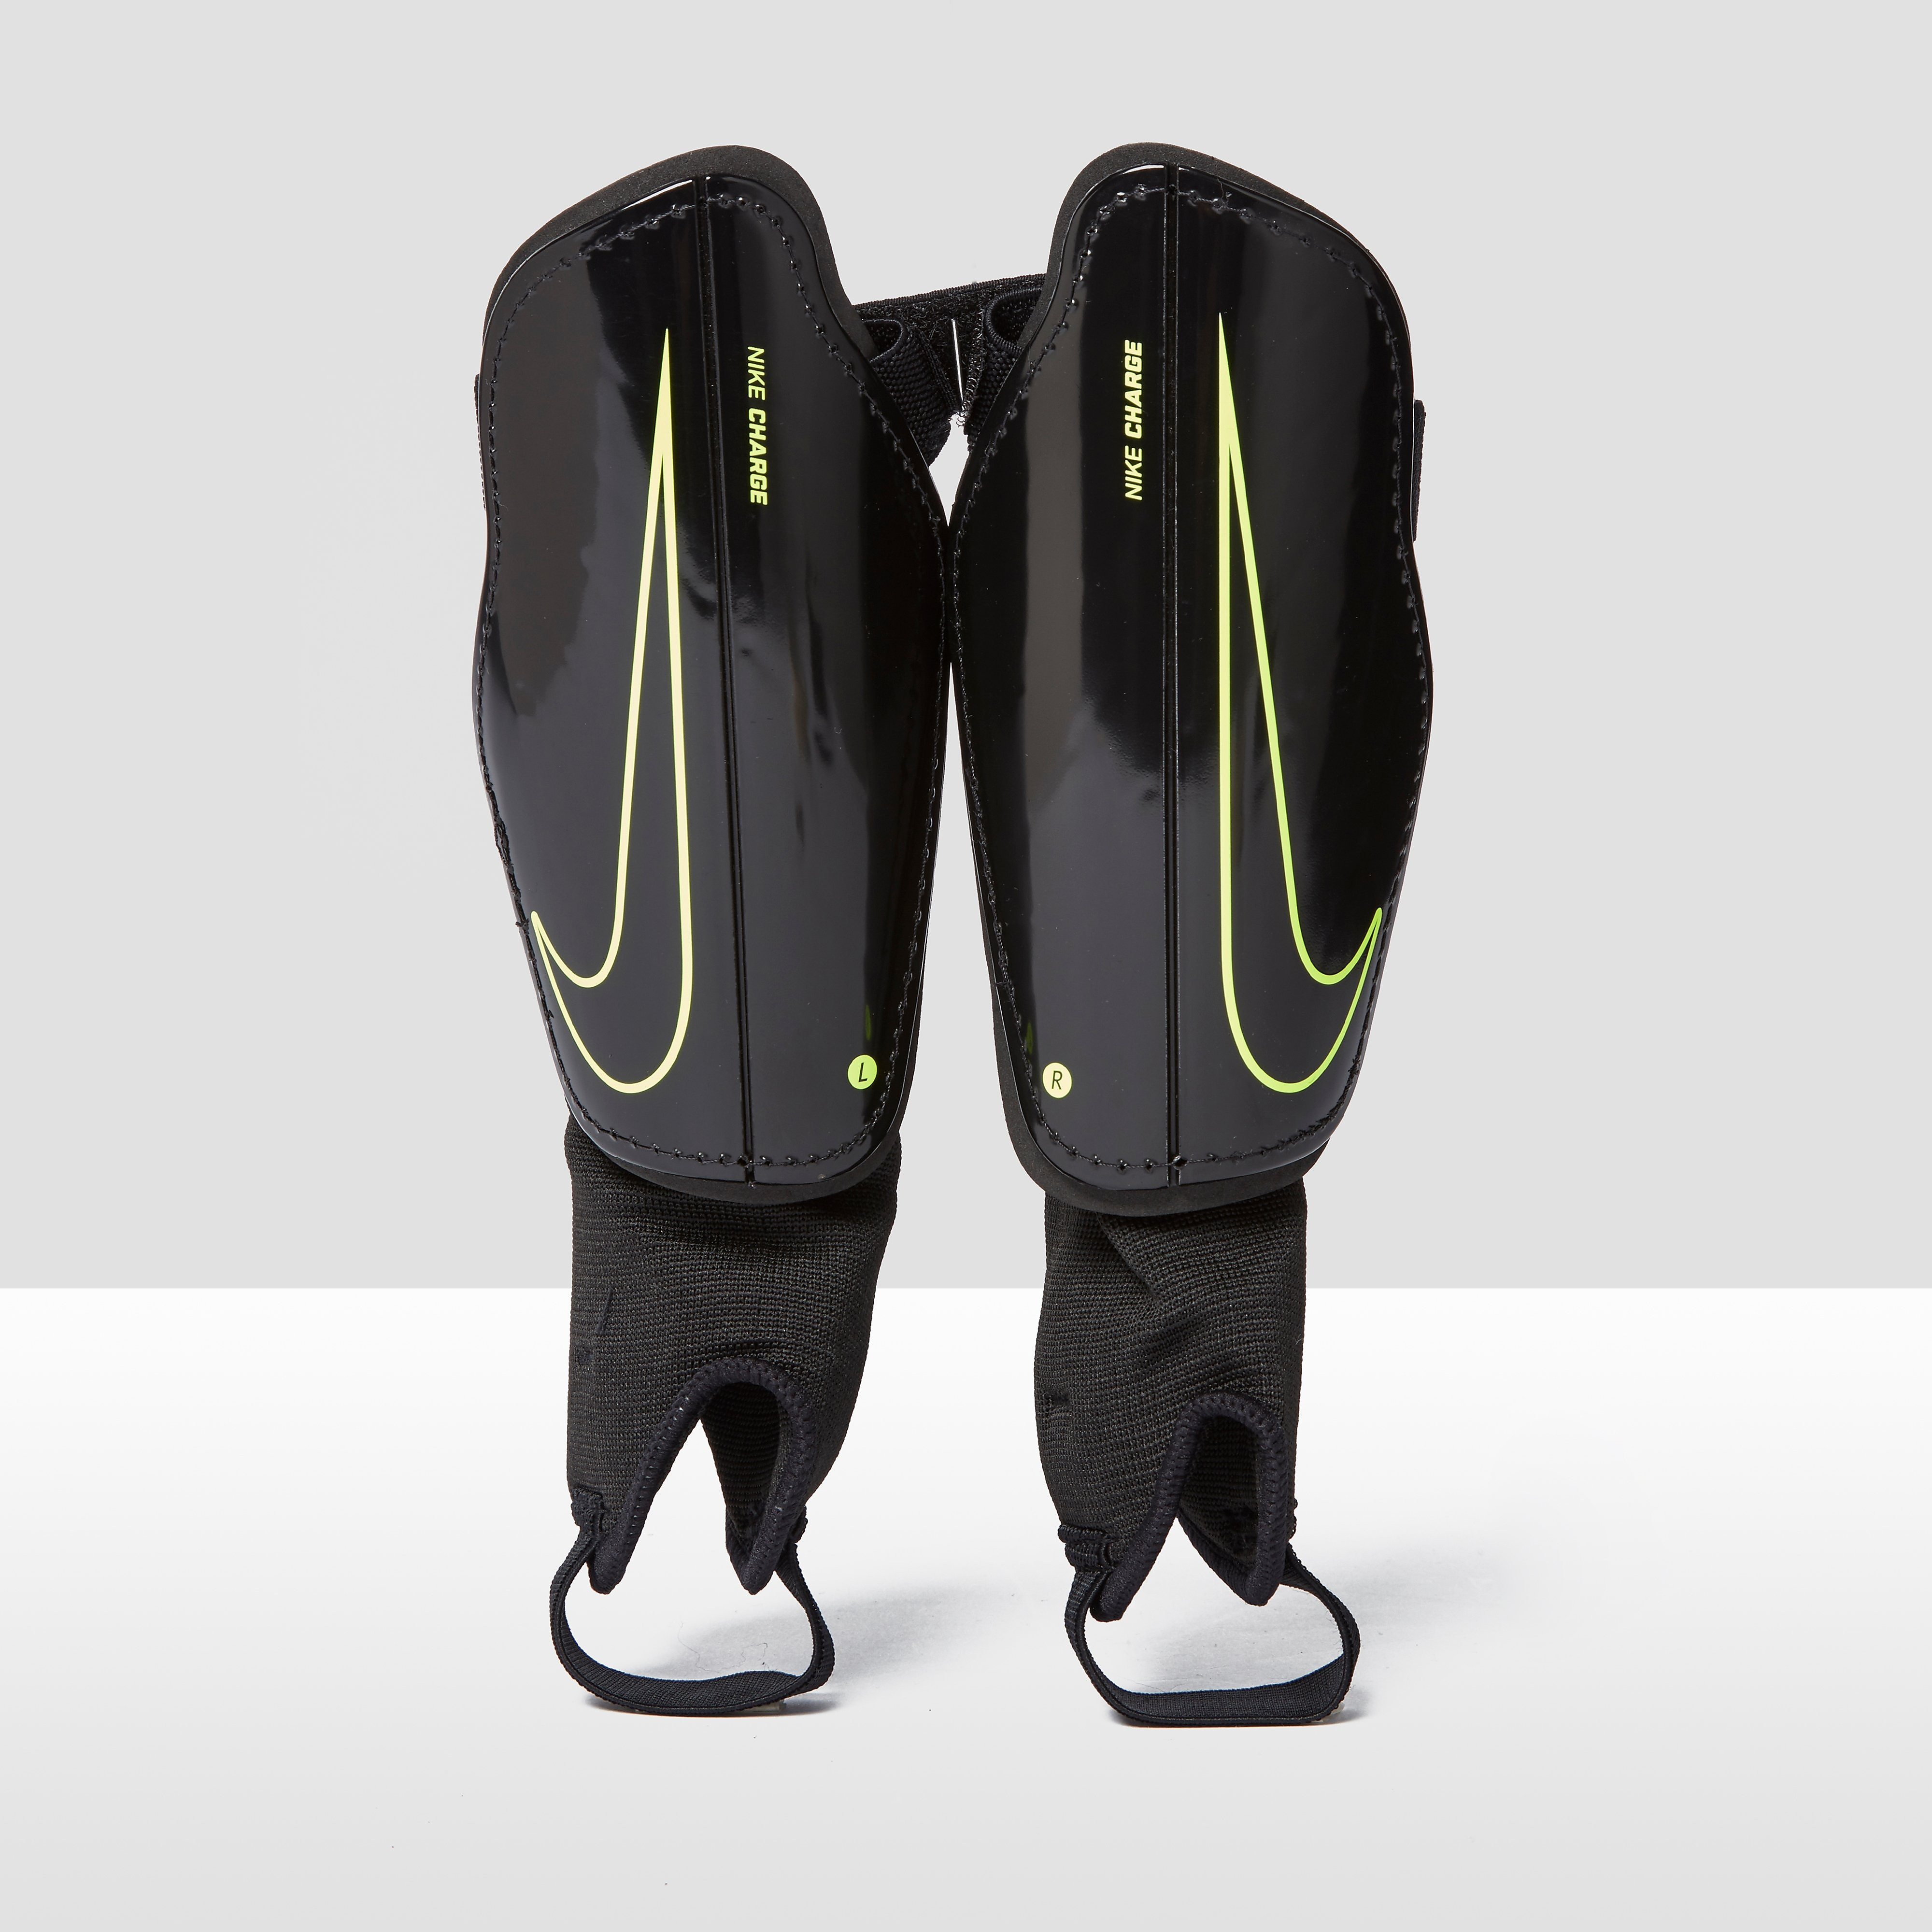 Nike Junior Charge 2.0 Shin Guards